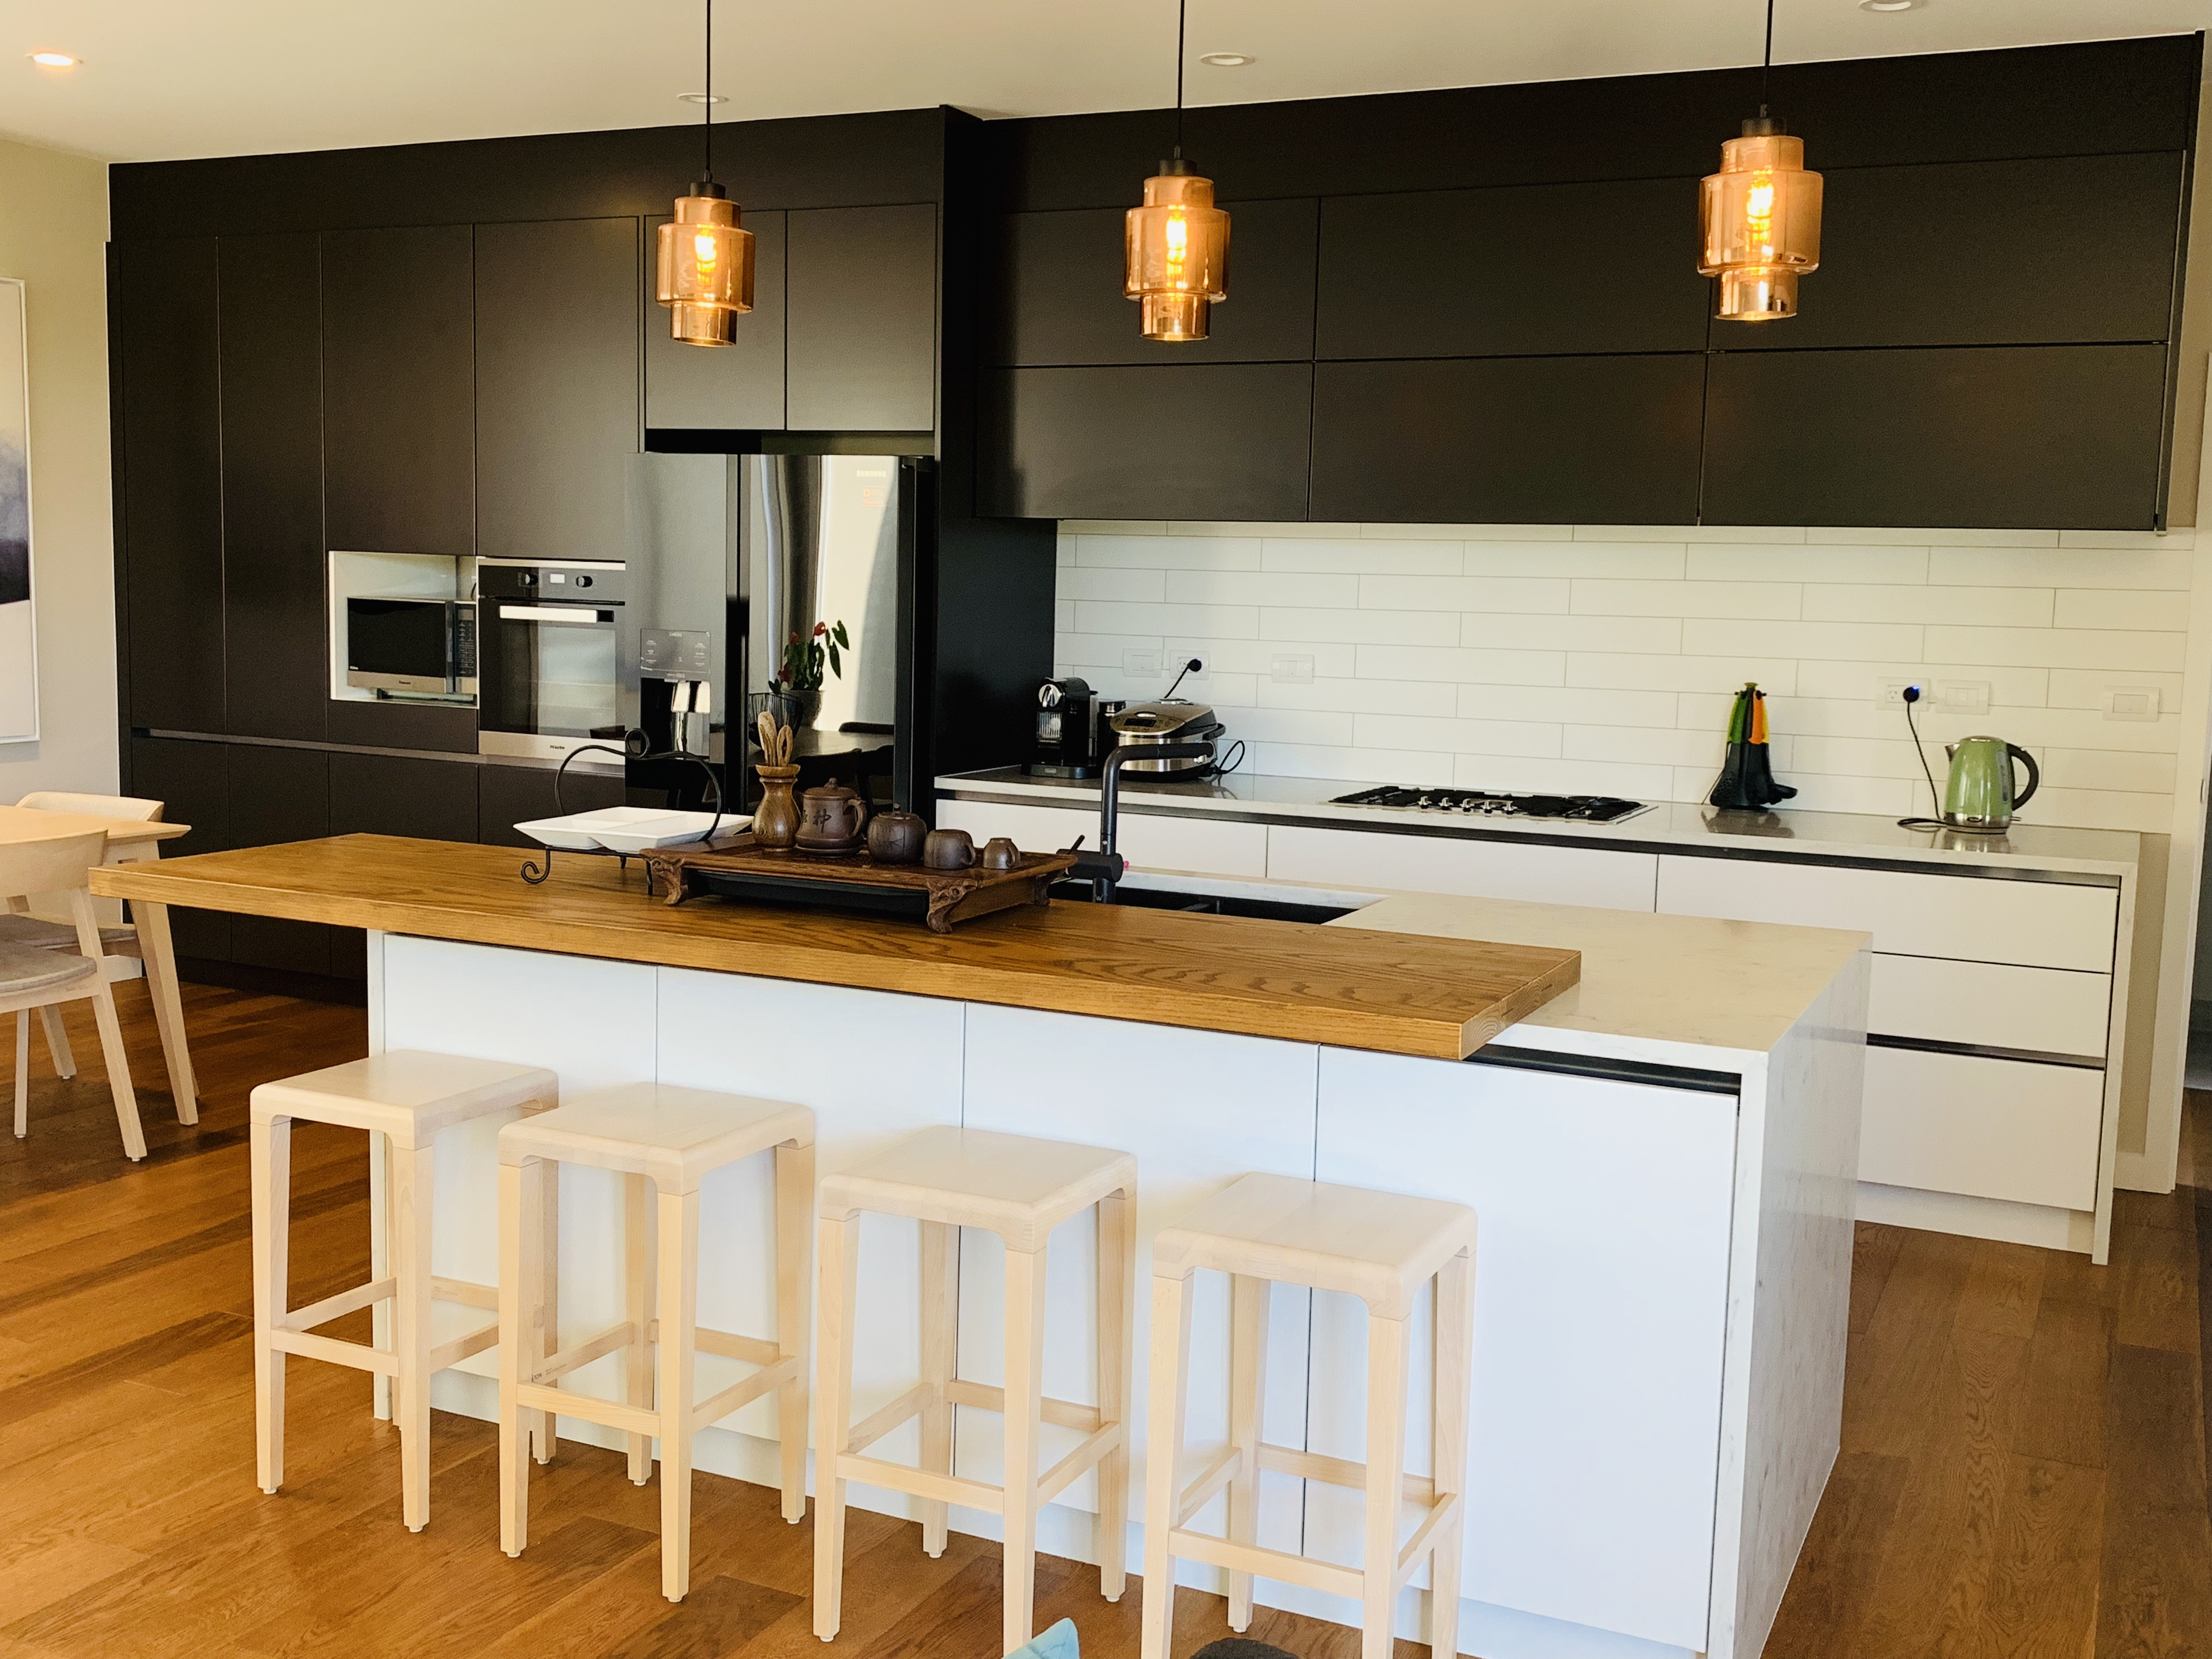 GJ-Kitchens-saint-helierss-kitchen-3-20190401222609260